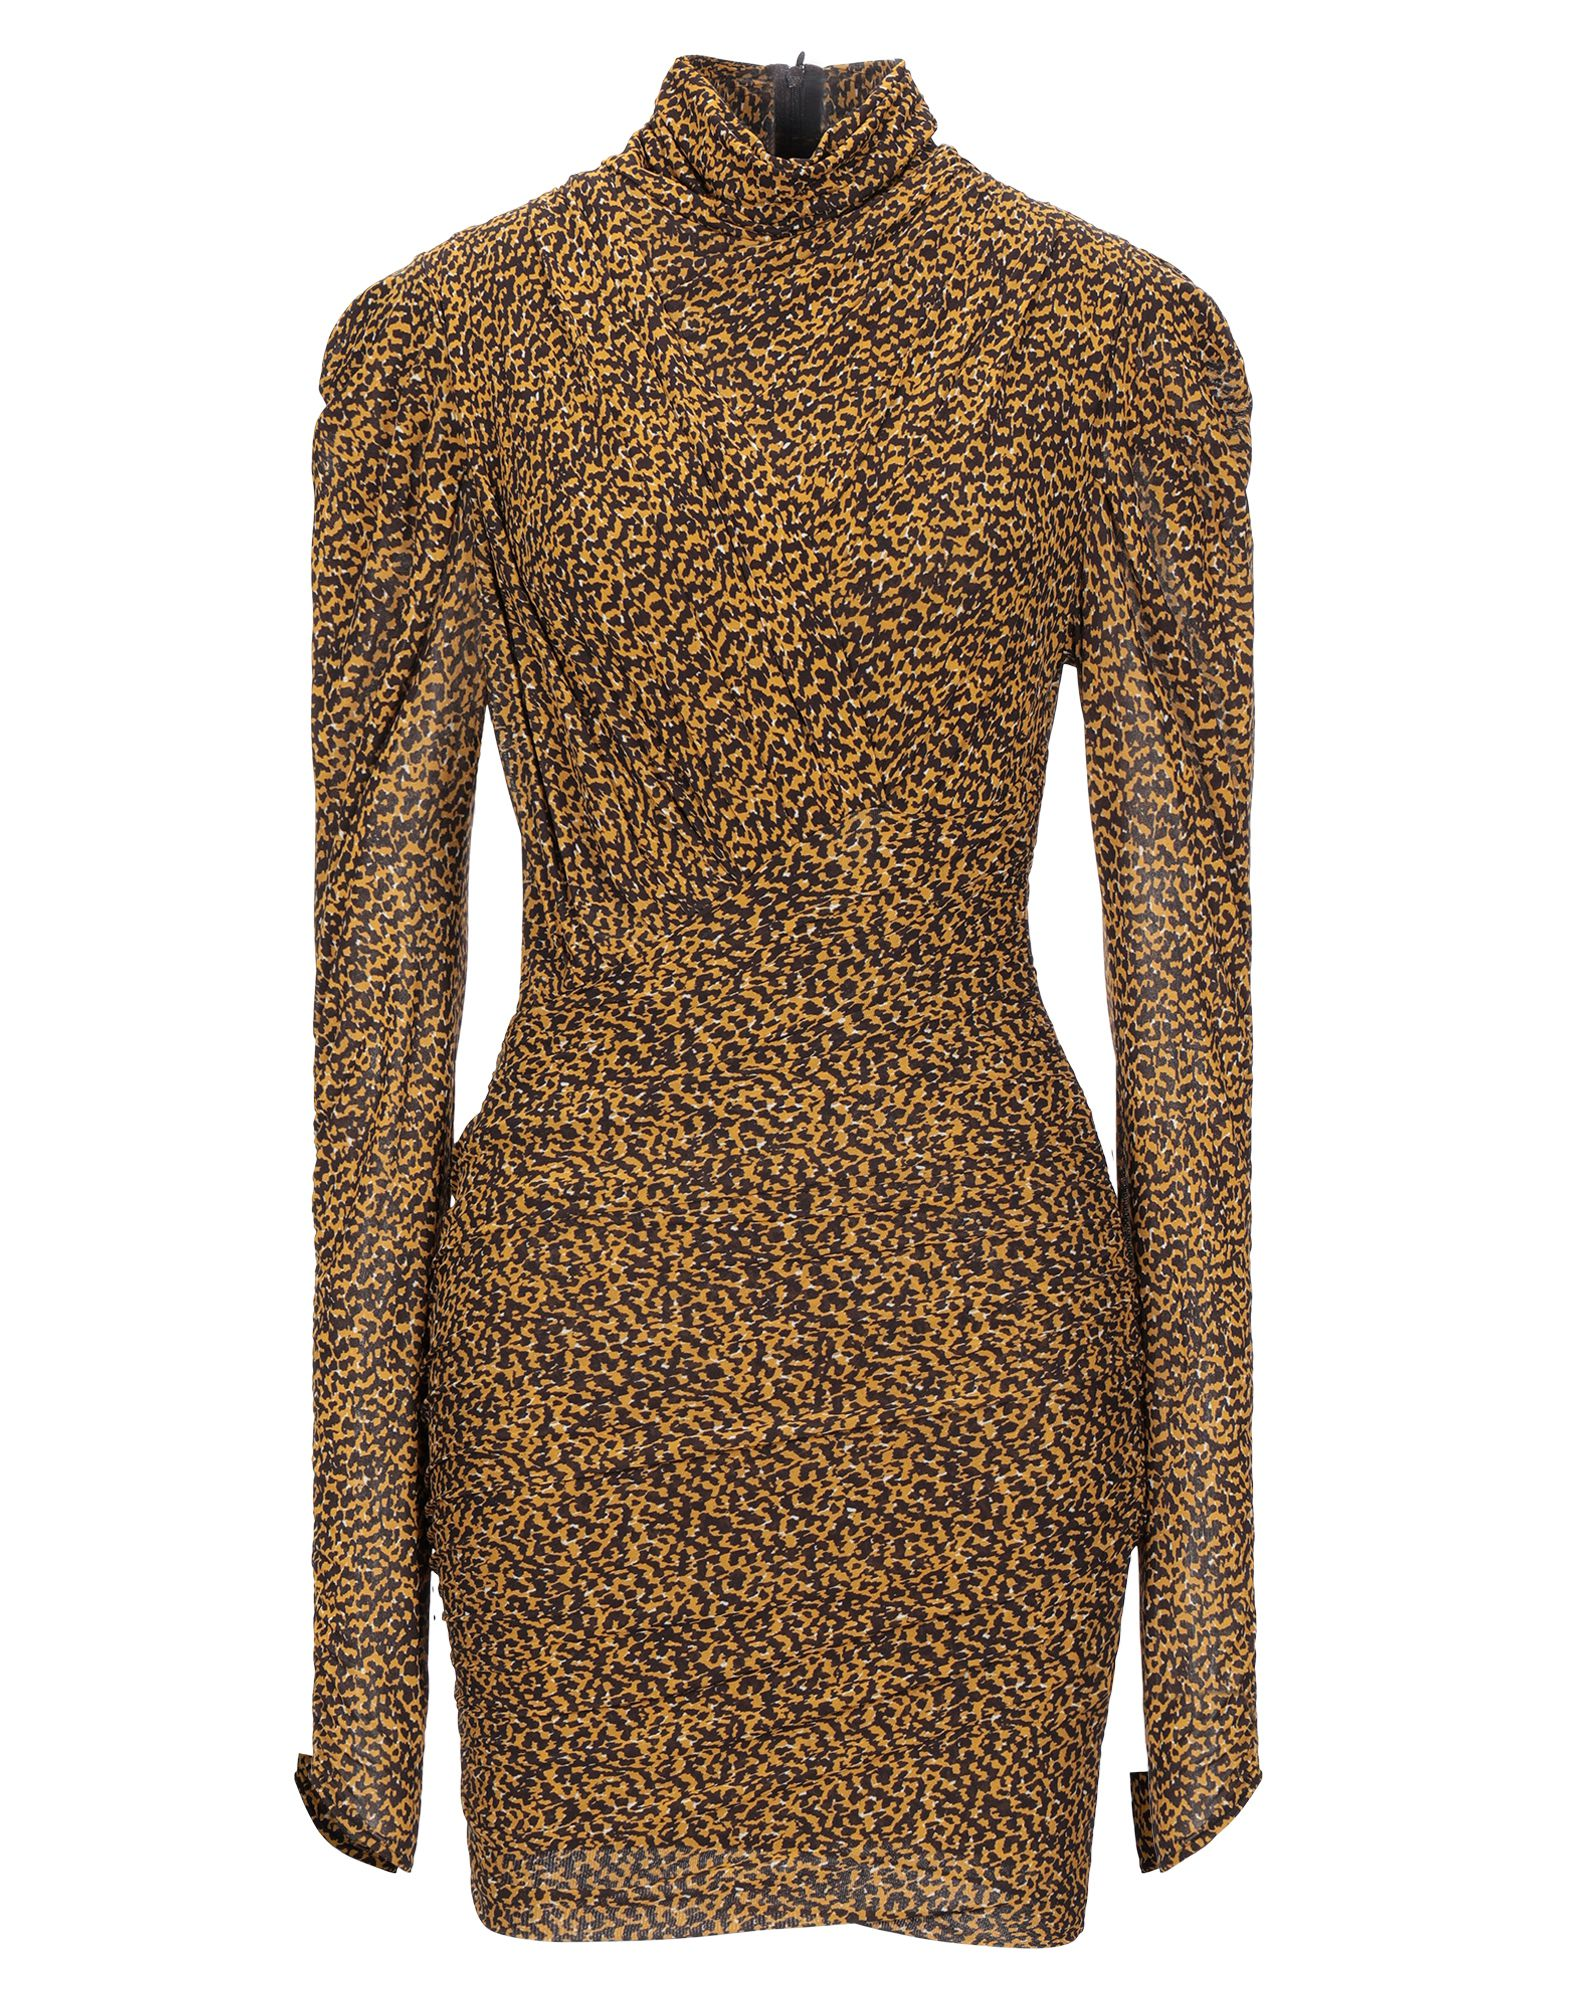 ISABEL MARANT Short dresses. crepe, draped detailing, two-tone, turtleneck, long sleeves, no pockets, rear closure, zipper closure, semi-lined, stretch. 92% Viscose, 8% Elastane